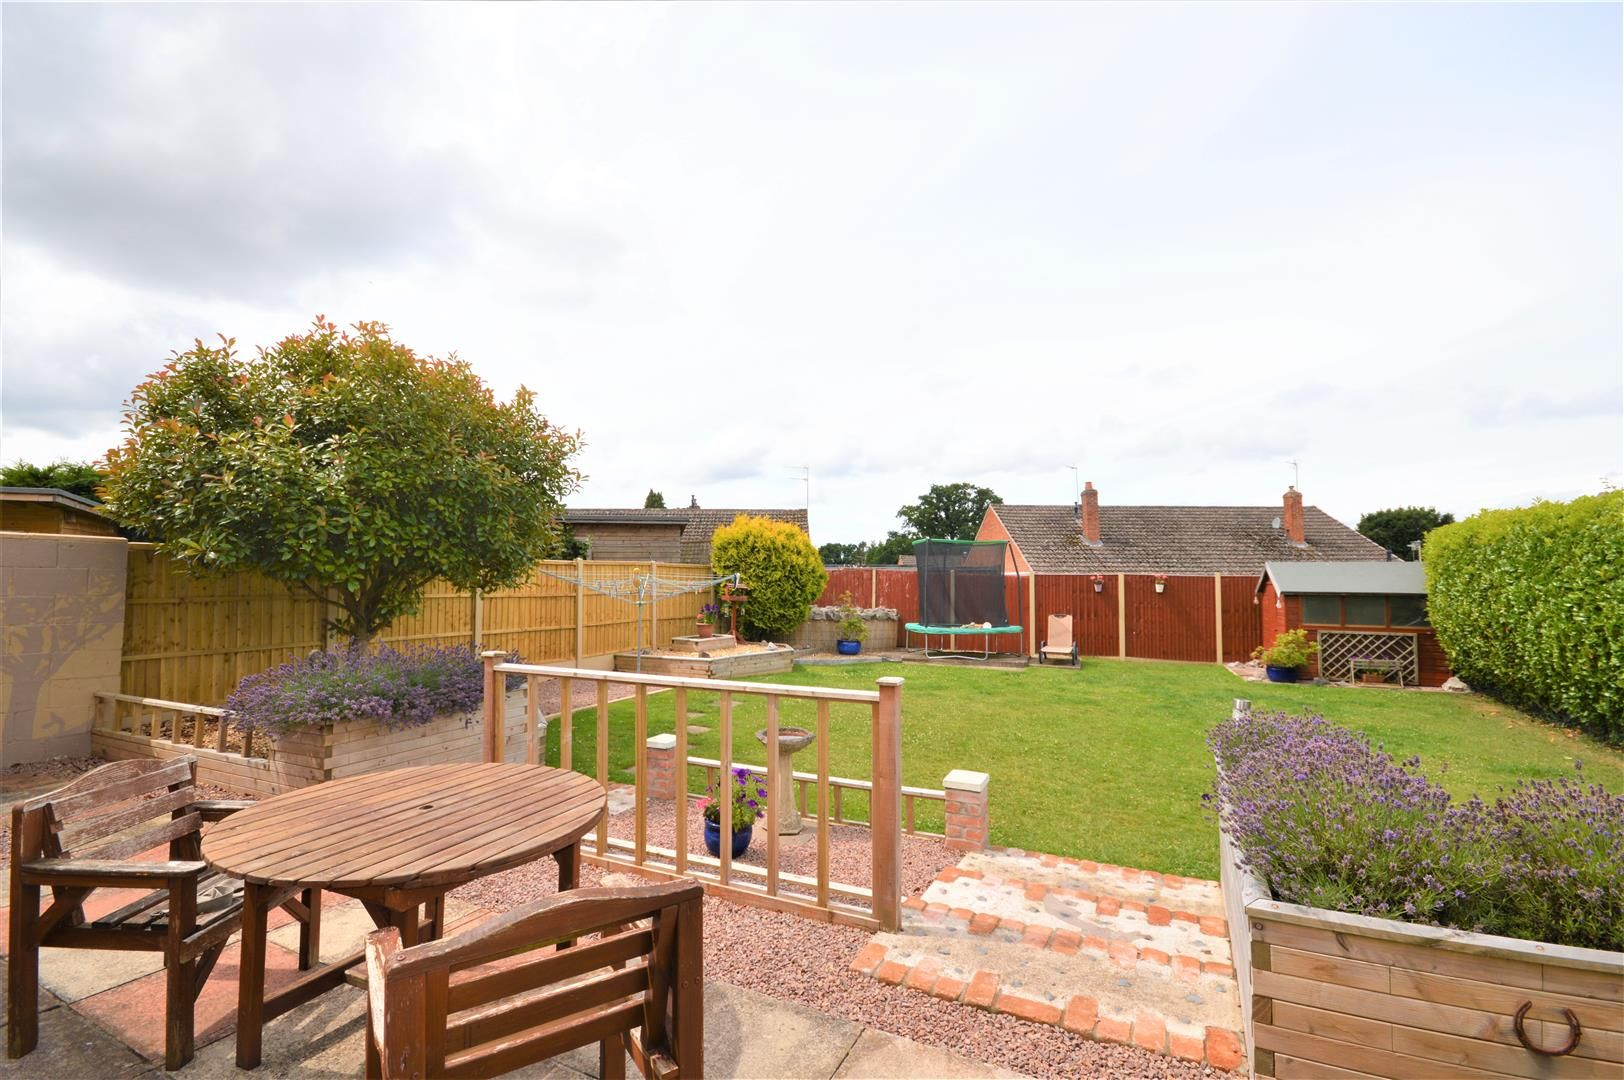 4 bed semi-detached for sale in Clehonger  - Property Image 13